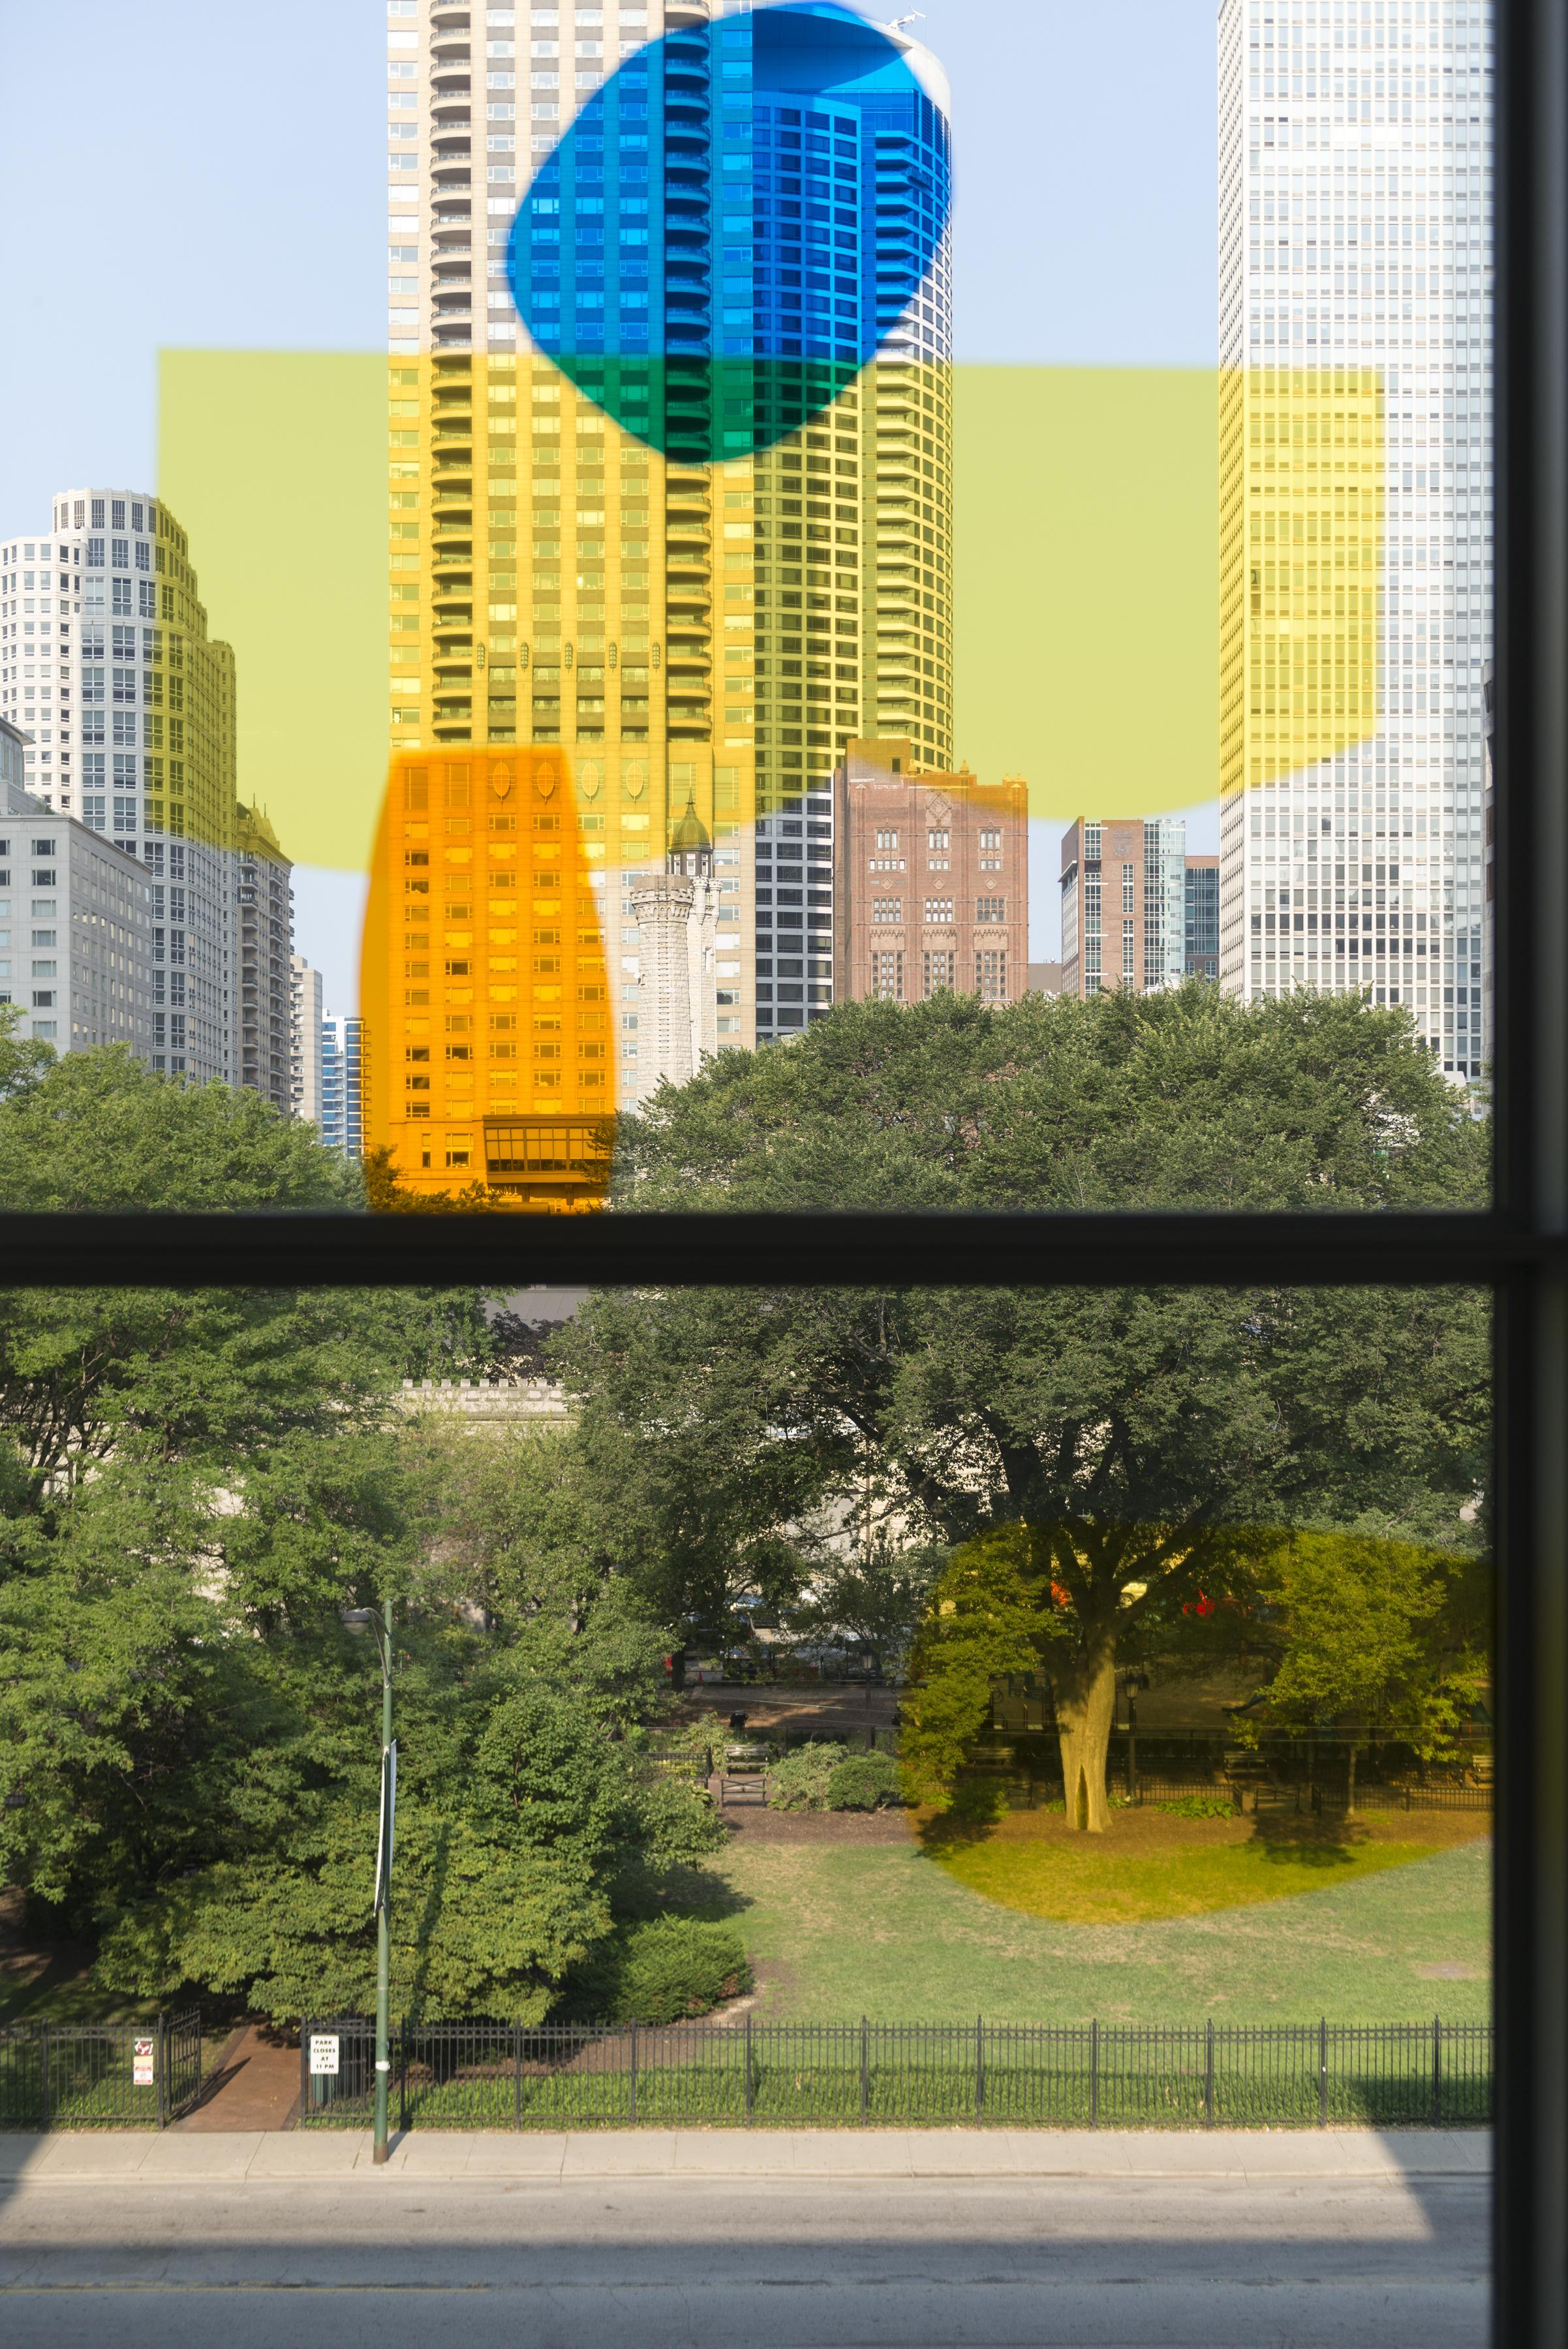 A window looking out on a park and the Chicago skyline has four brightly colored splotches of yellow, orange, and blue.